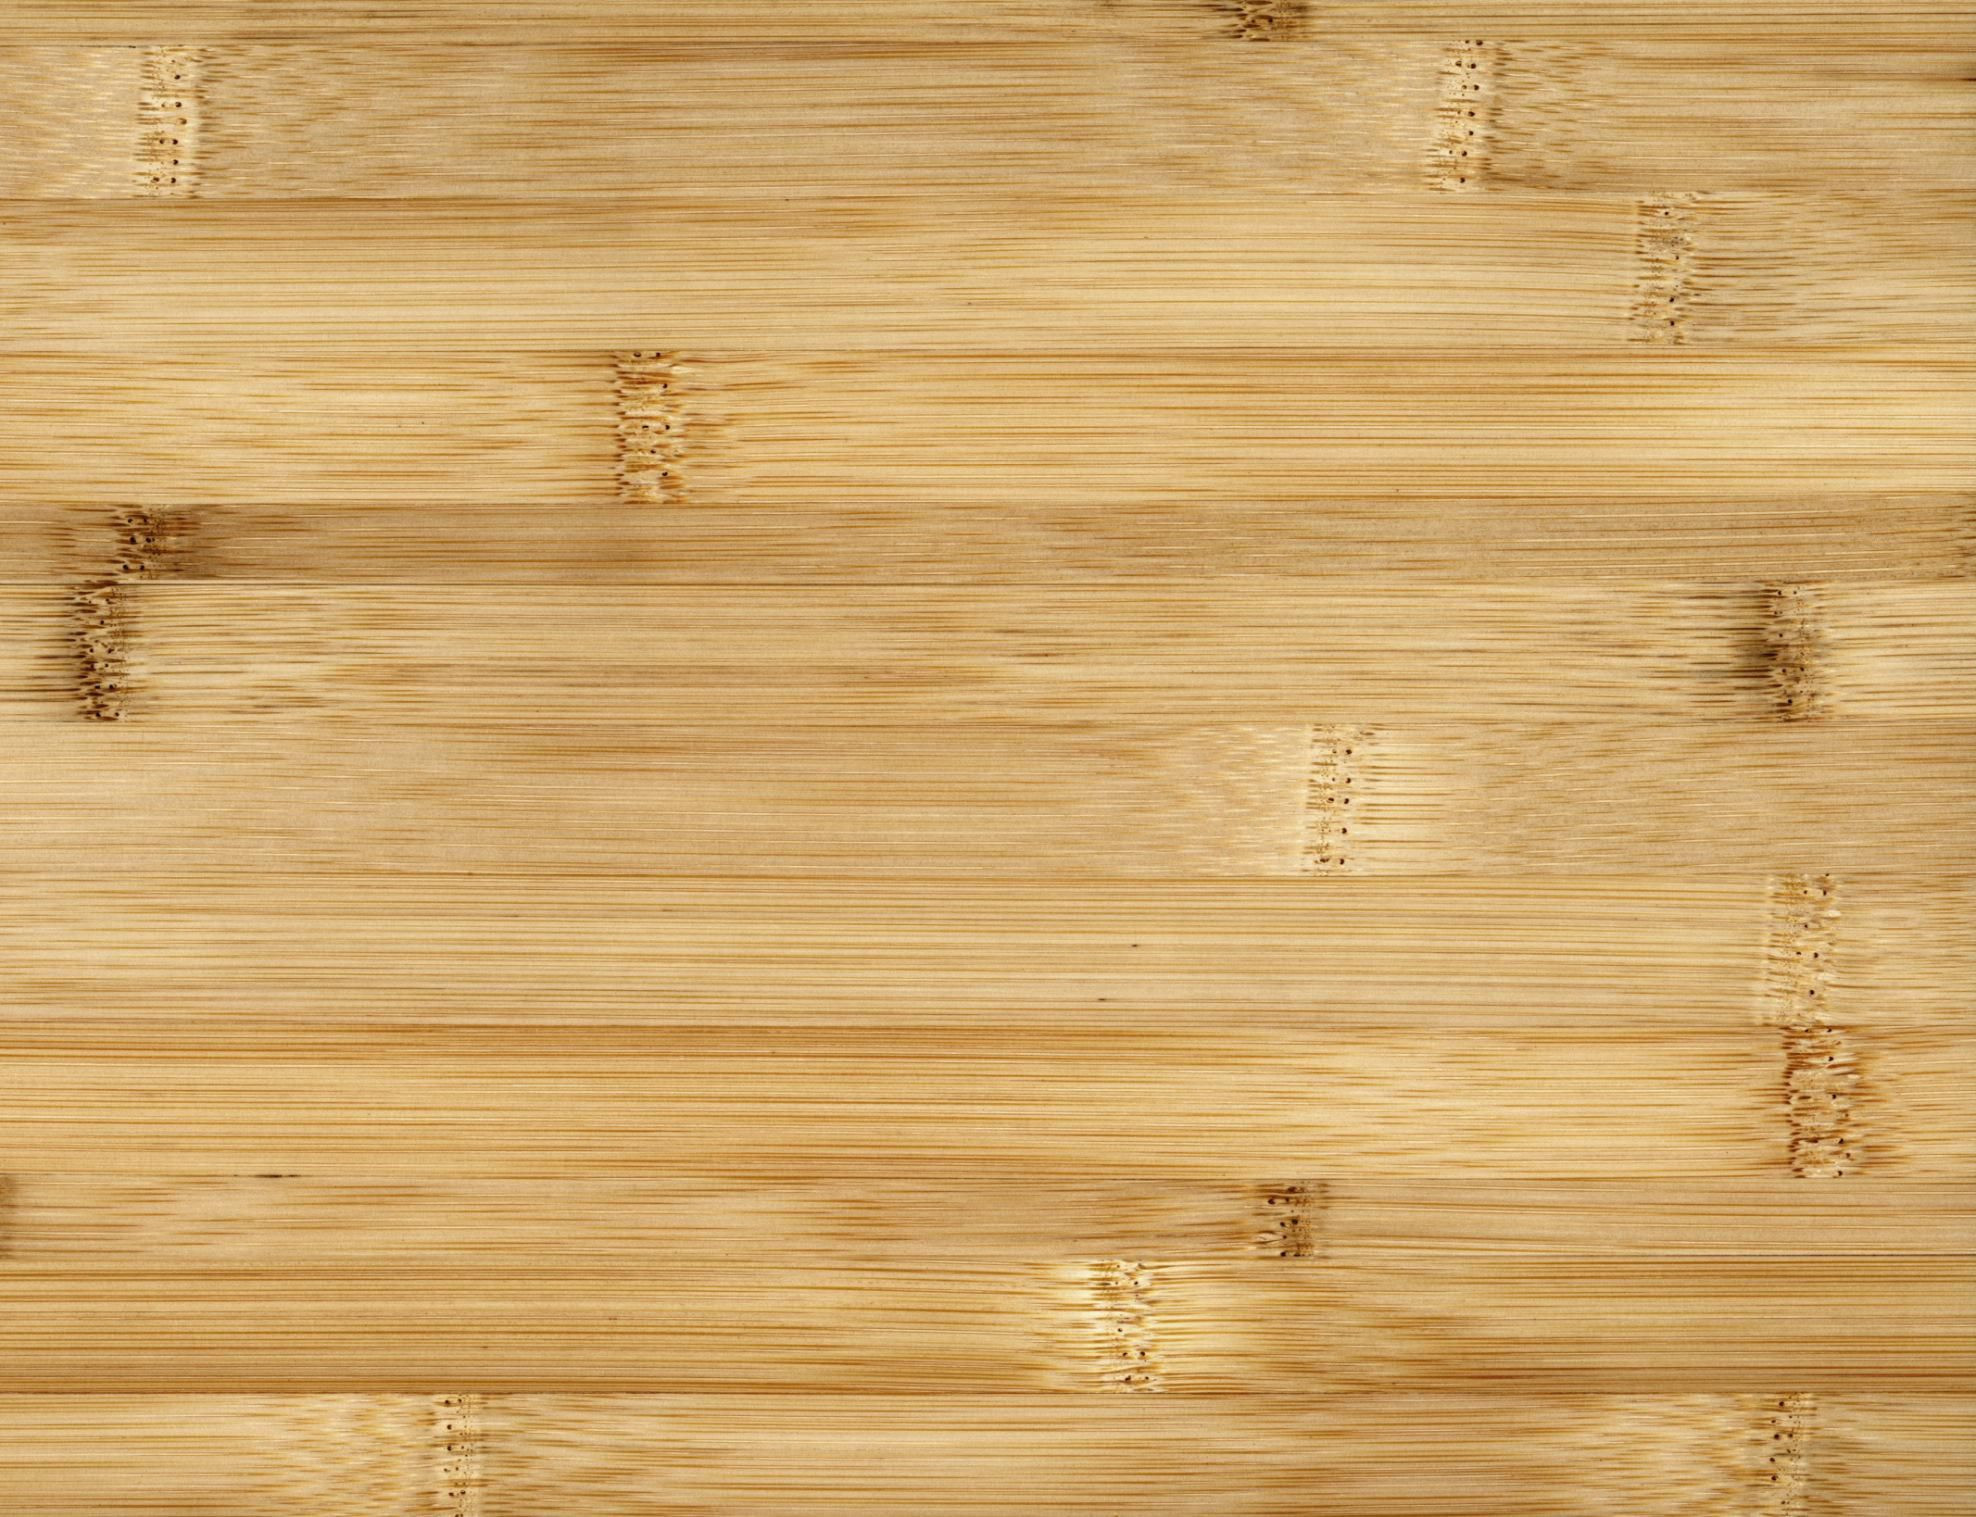 Prefinished Hardwood Floor Cleaning Tips Of How to Clean Bamboo Flooring with 200266305 001 56a2fd815f9b58b7d0d000cd